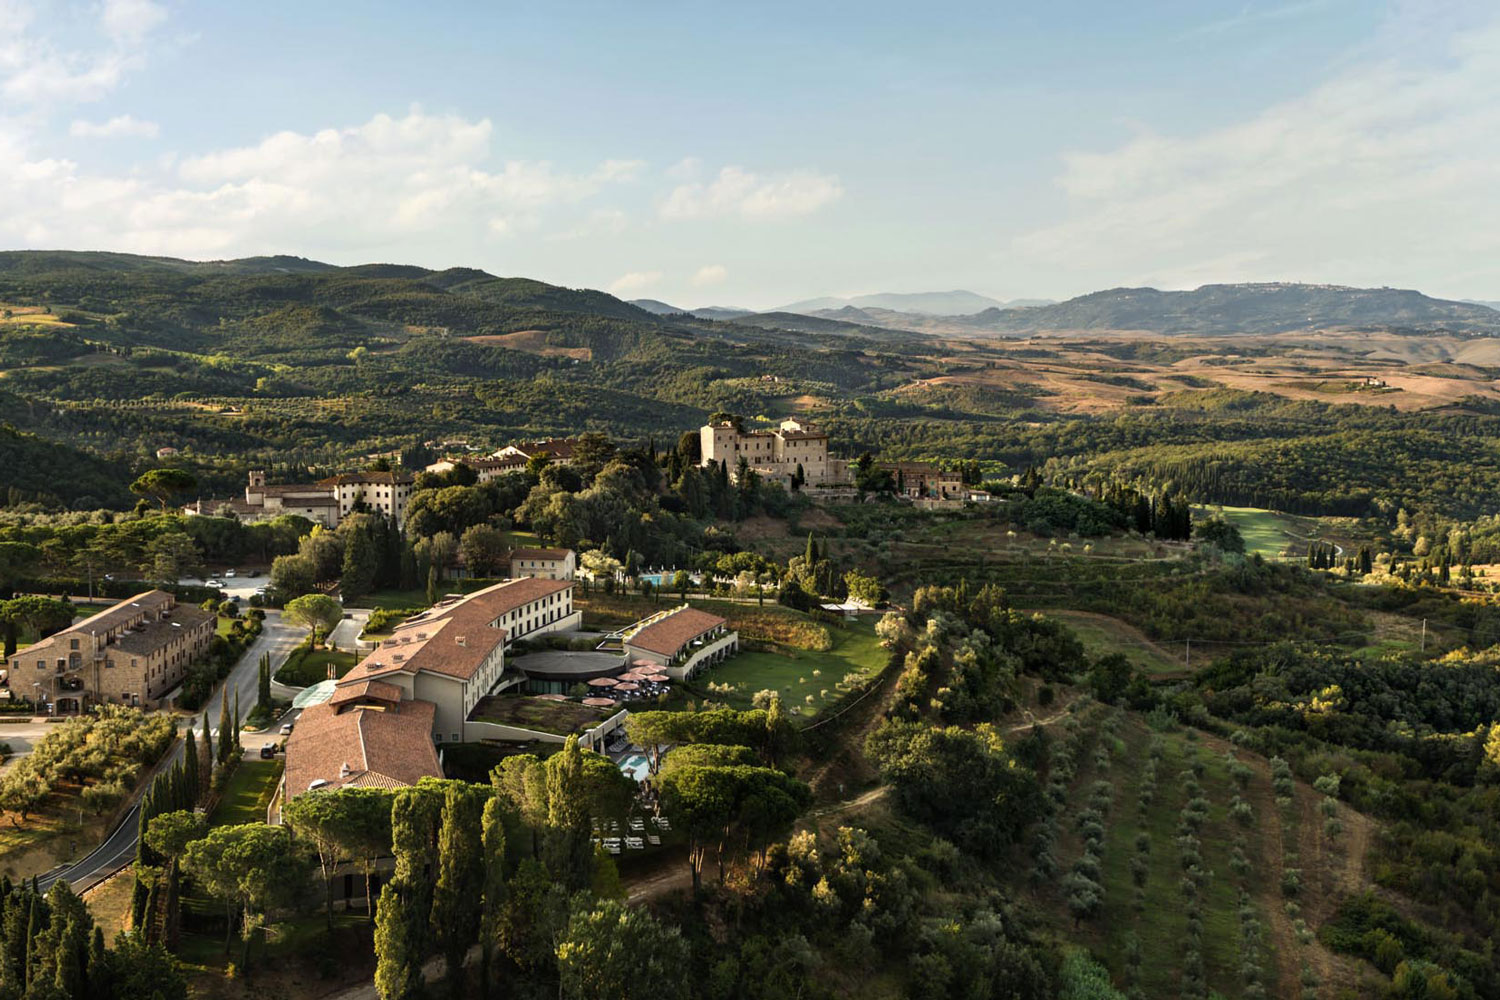 Hotel Il Castelfalfi is the estate's five-star accommodation